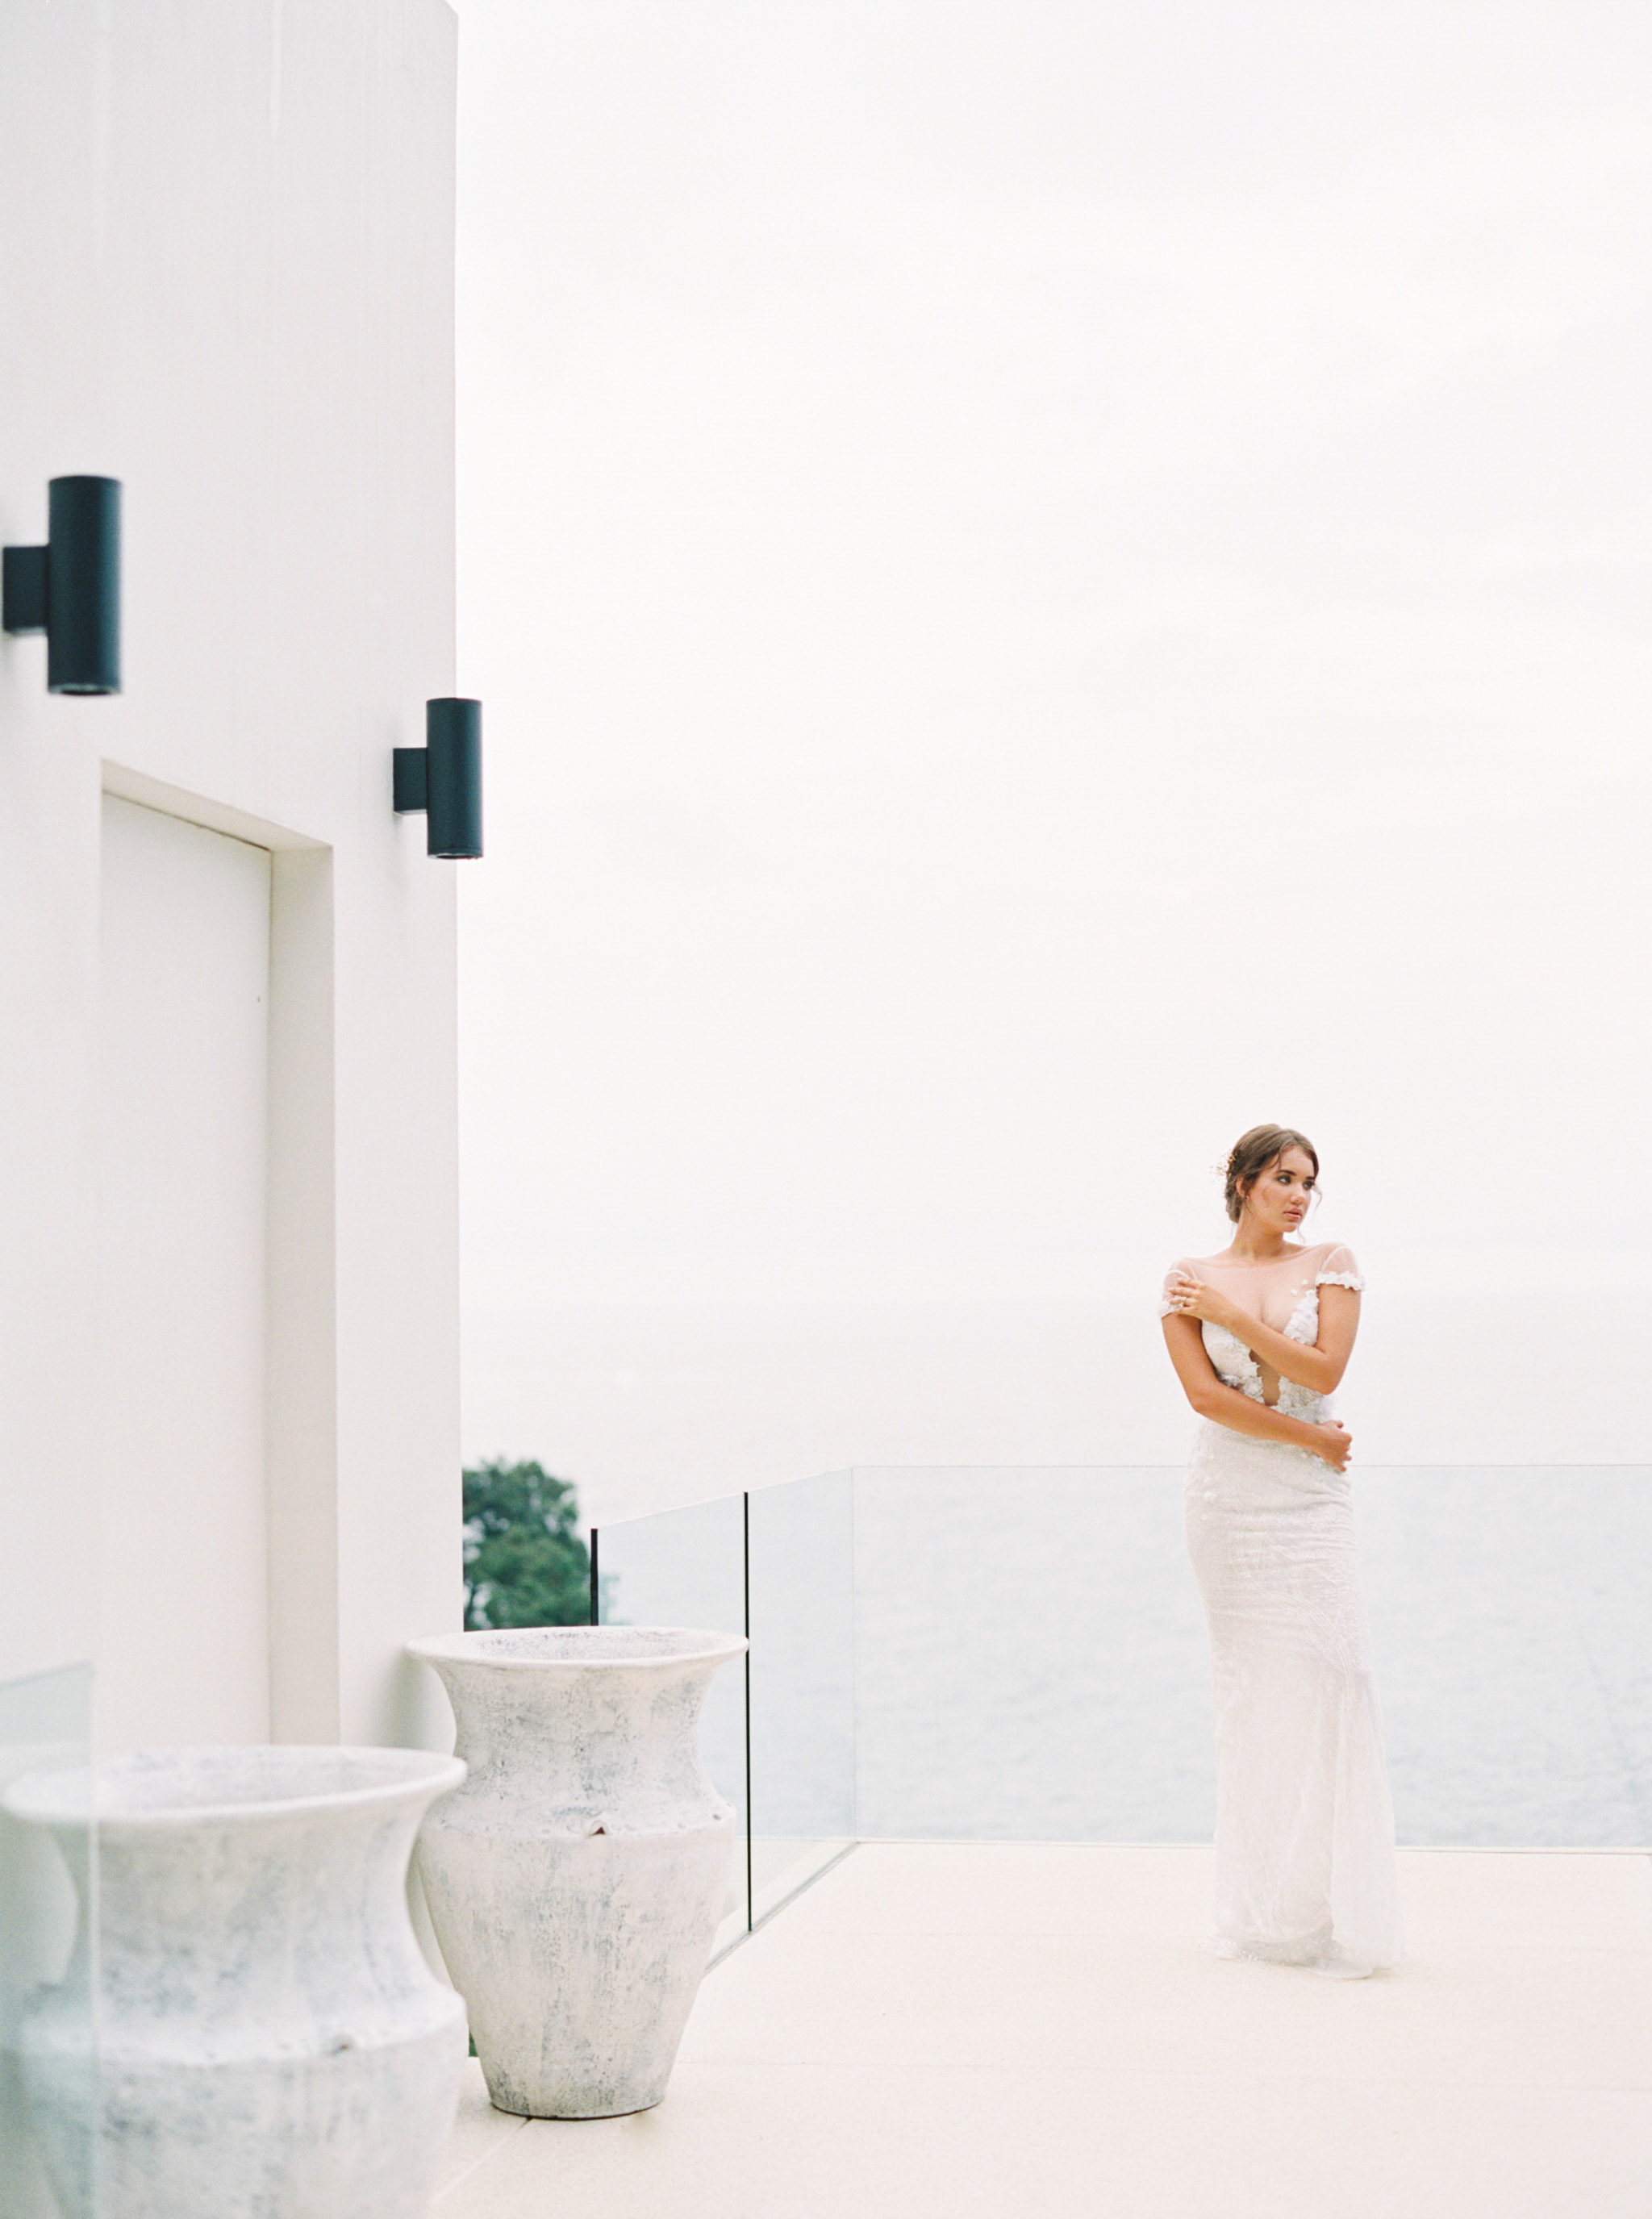 Destination Wedding at The Aquila Luxury Villas in Phuket Thailand Fine Art Film Wedding Photographer Sheri McMahon-00065-65.jpg